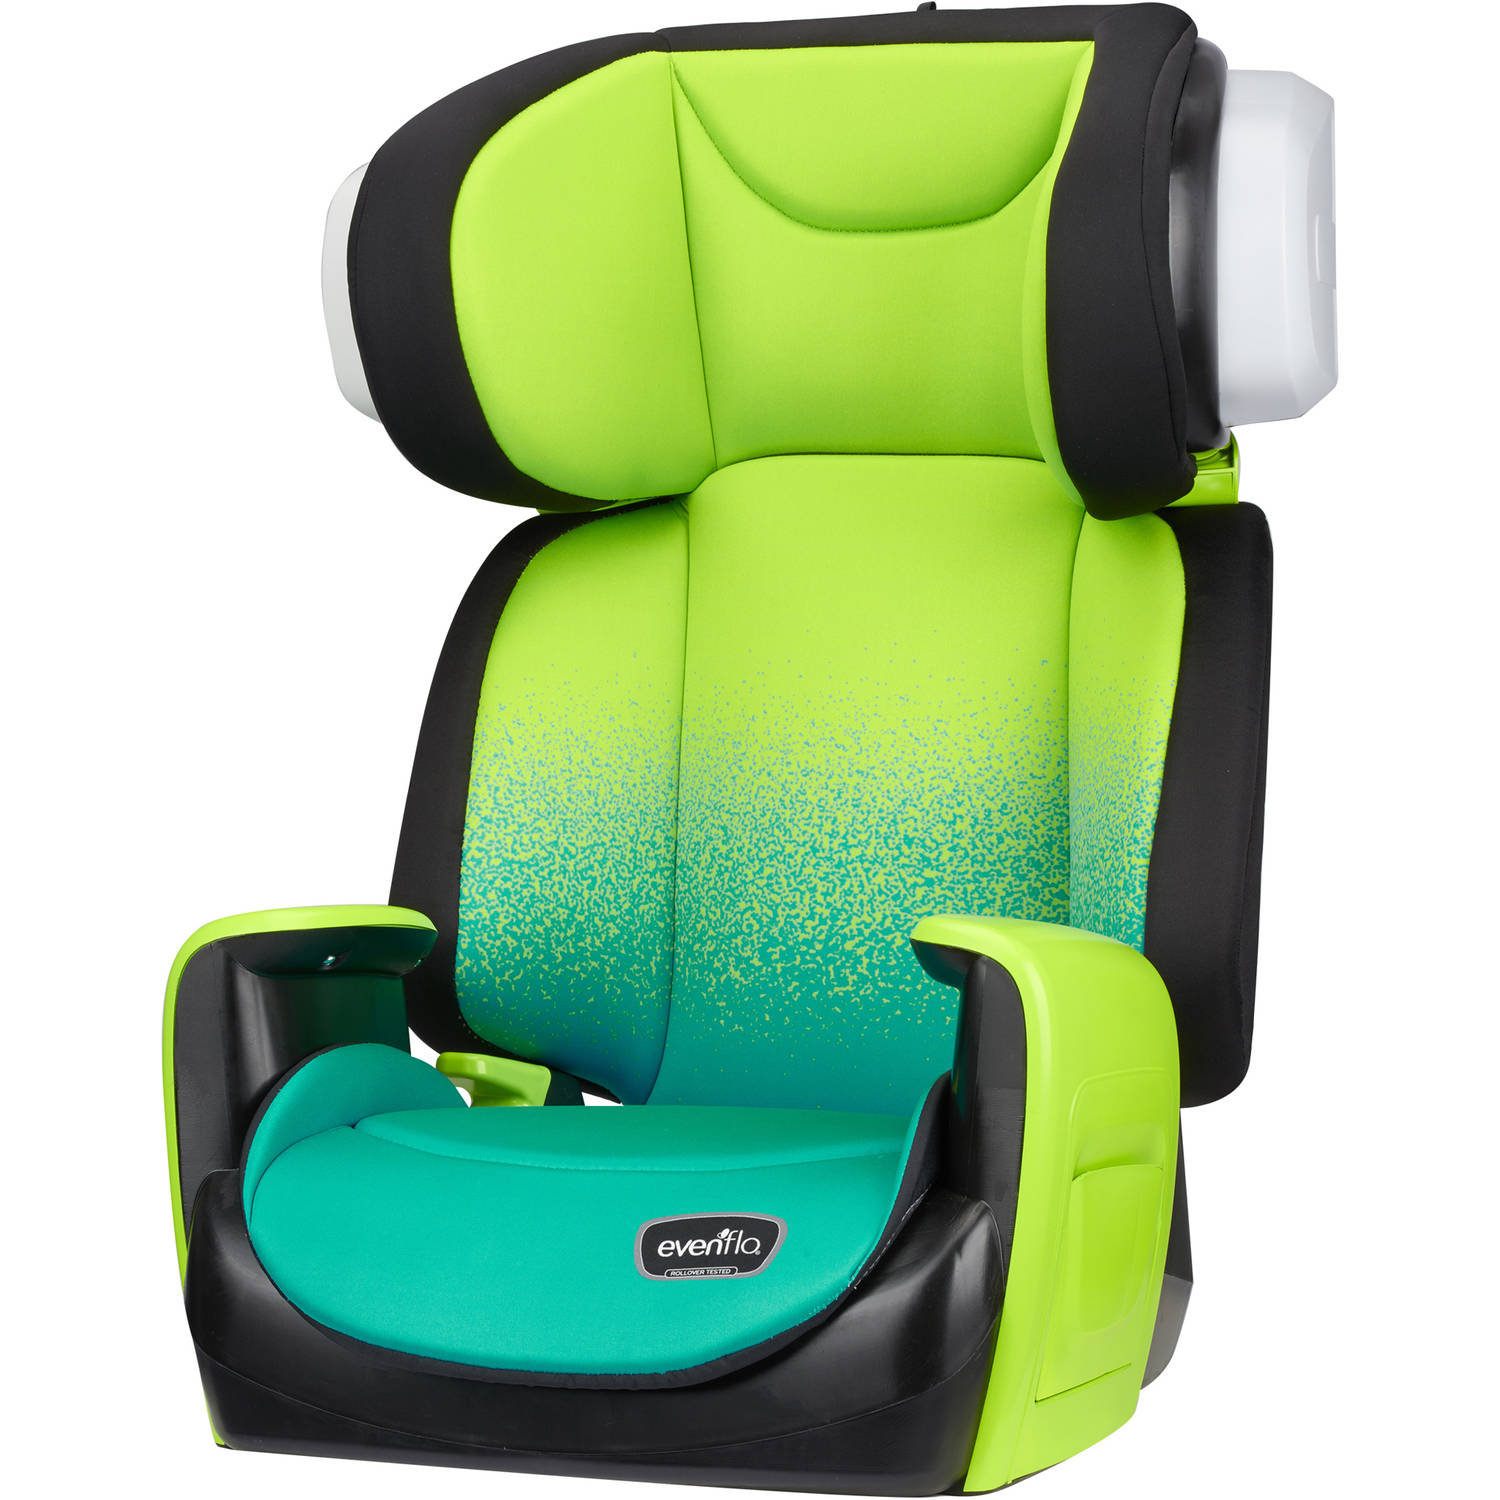 Evenflo Spectrum 2-in-1 High Back Booster Car Seat, Seascape